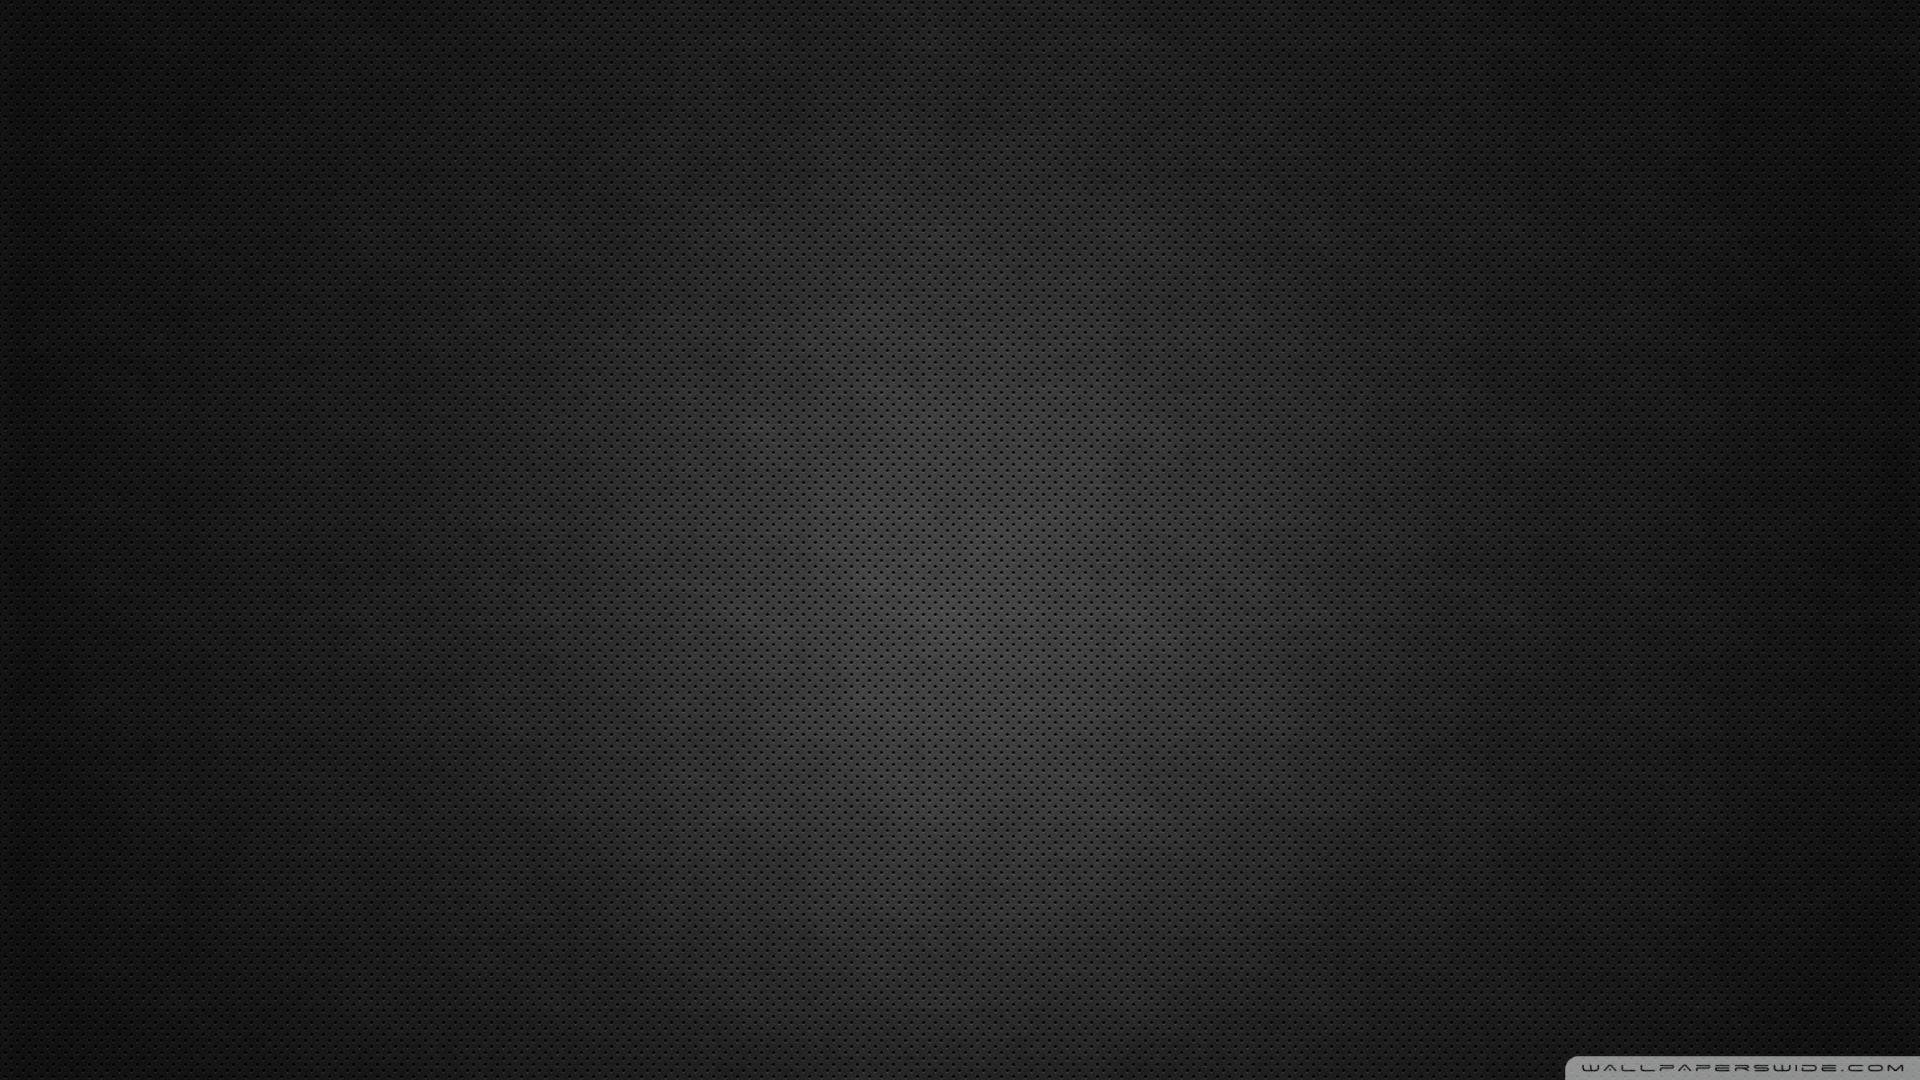 dark backgrounds 1920x1080 aero - photo #37